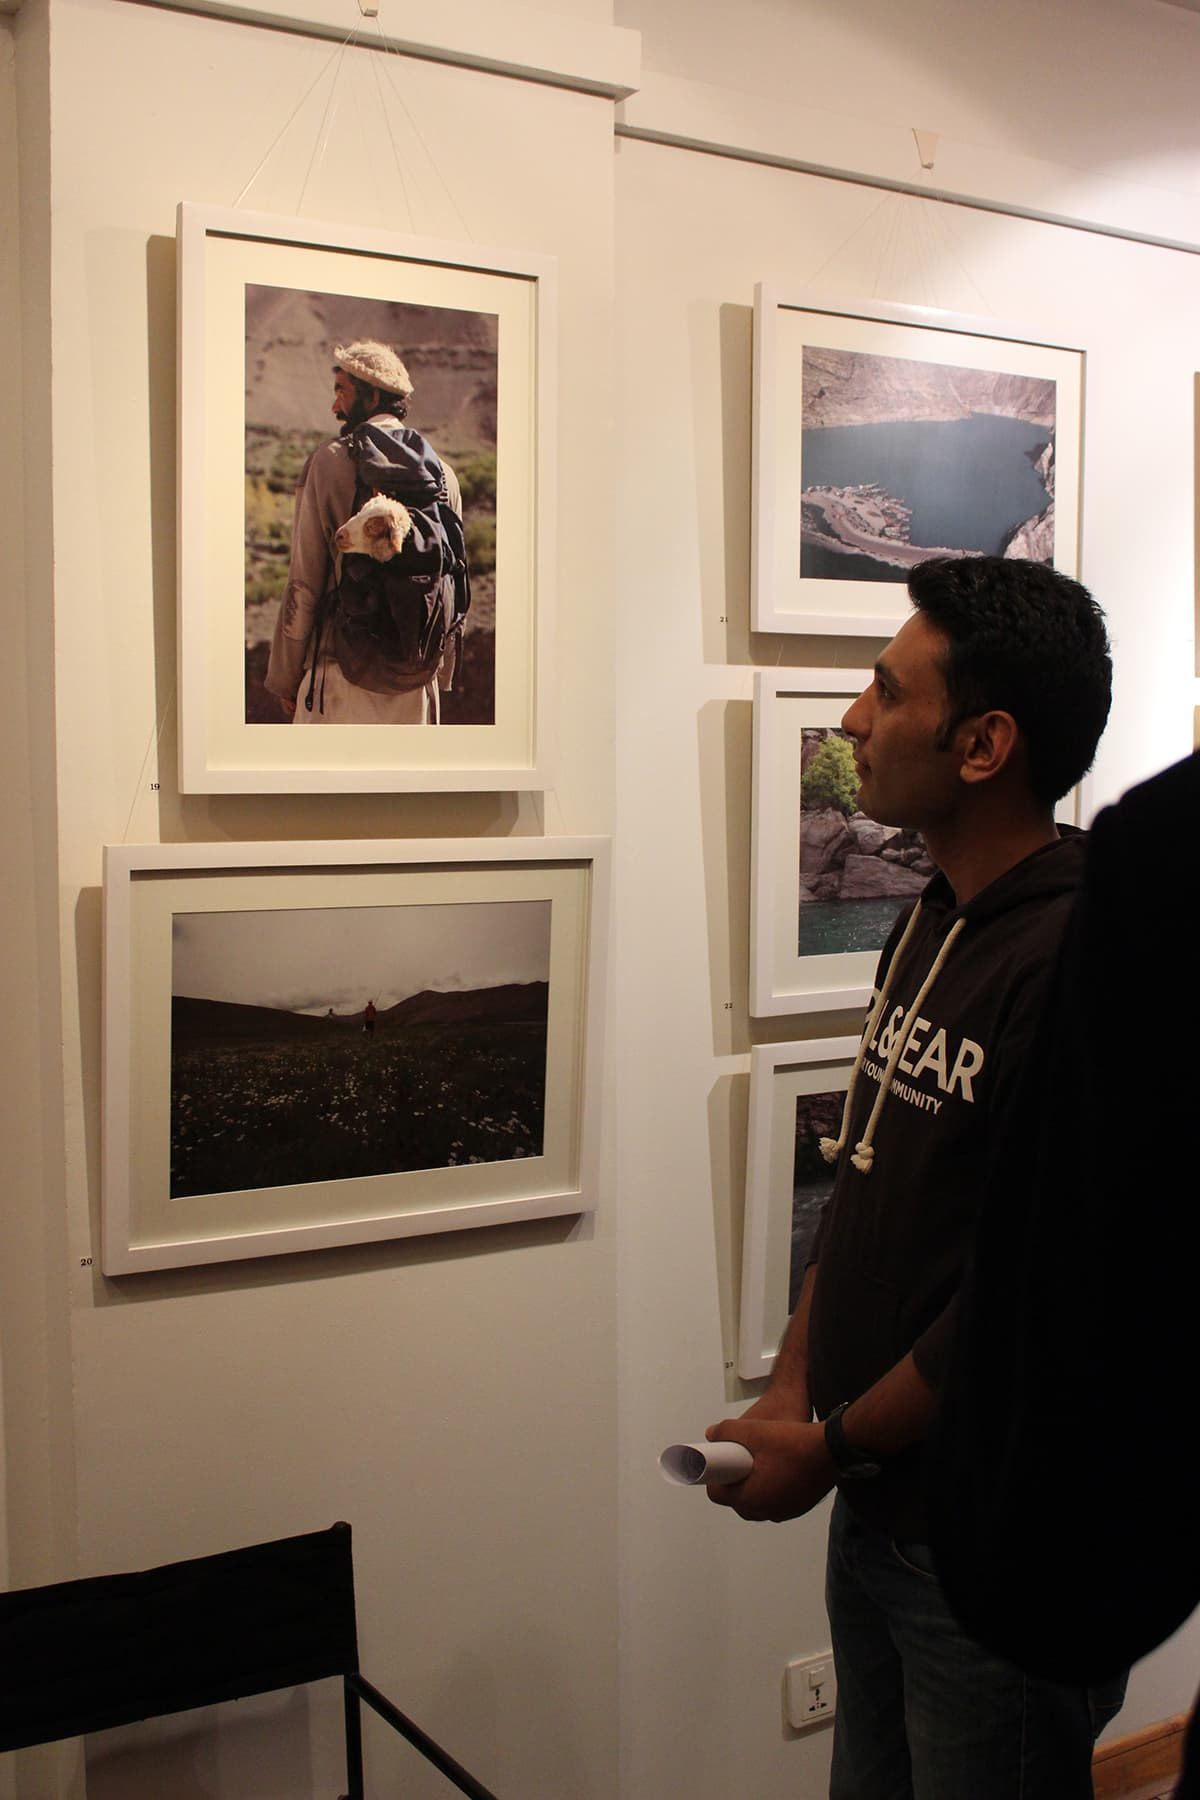 A visitor looks at Danial's work. — Photo by Ibtisam Khanzada